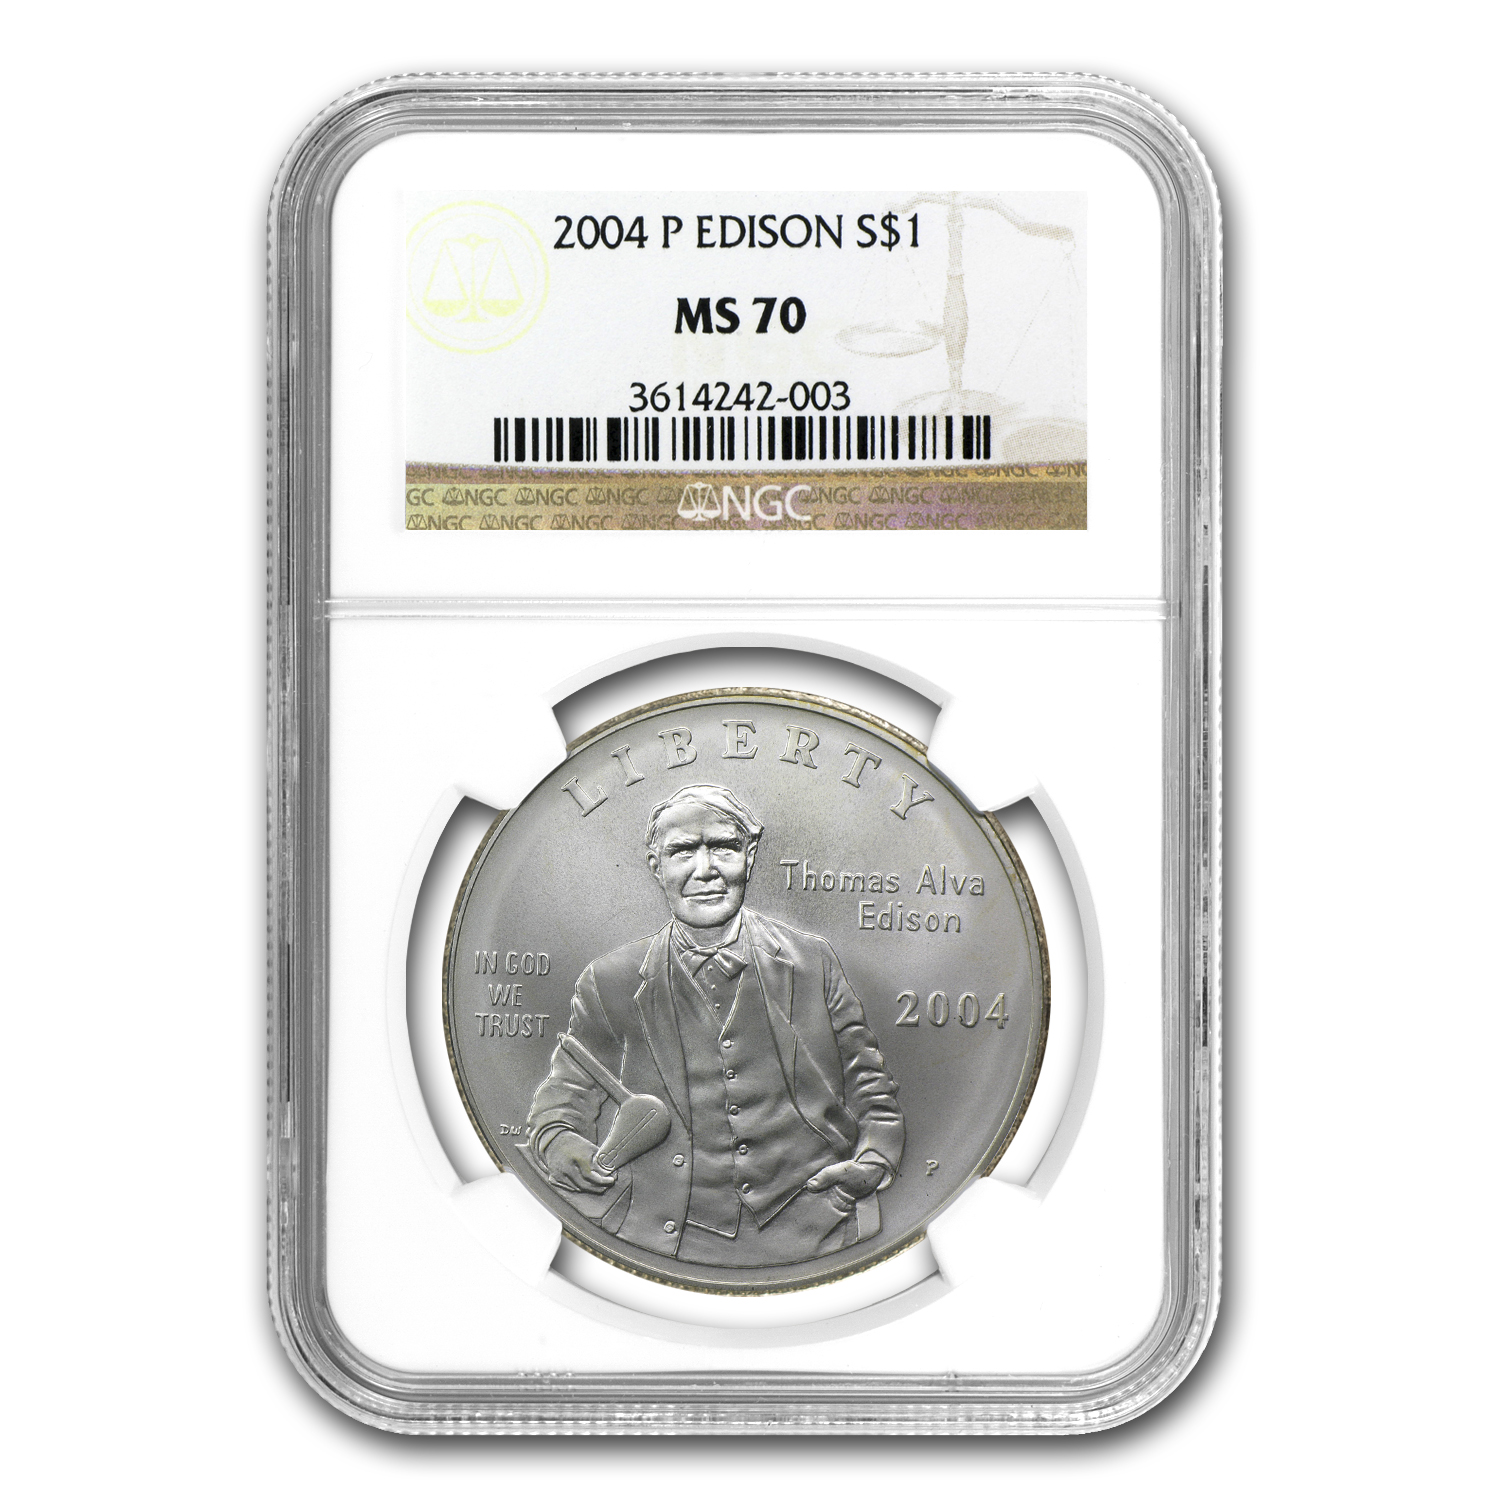 2004-P Thomas Edison $1 Silver Commemorative - MS-70 NGC